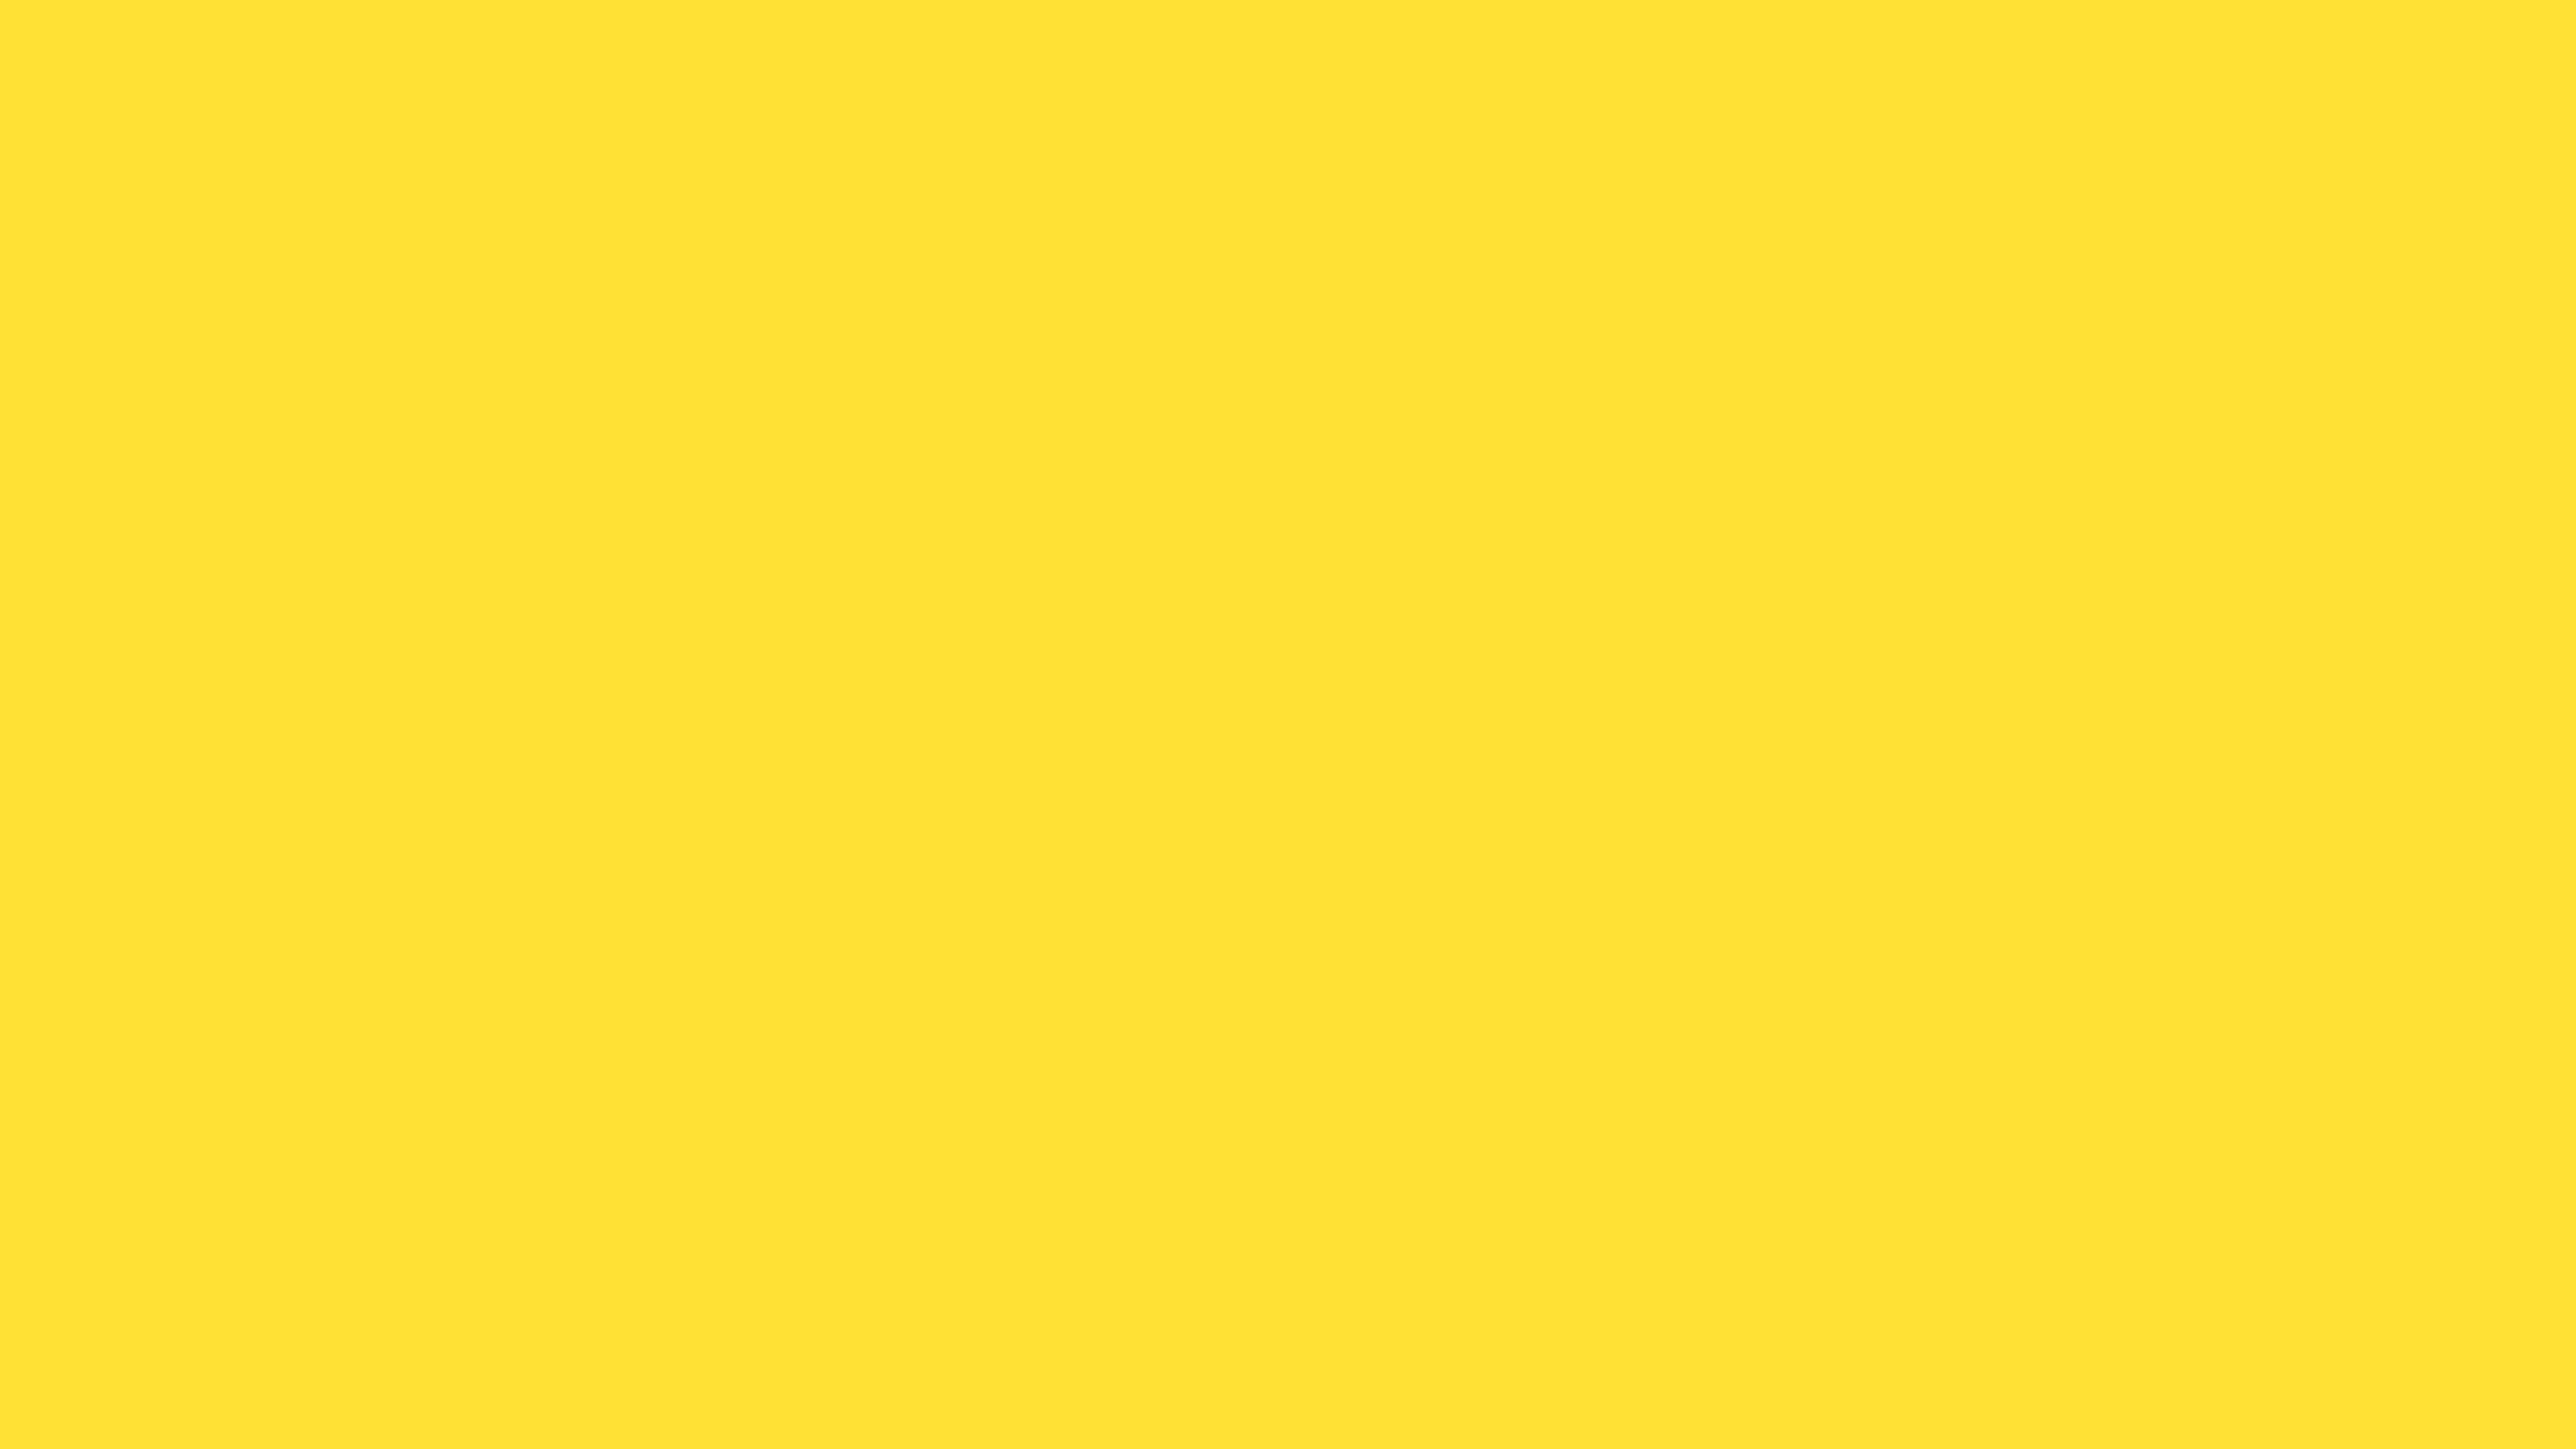 5120x2880 Banana Yellow Solid Color Background